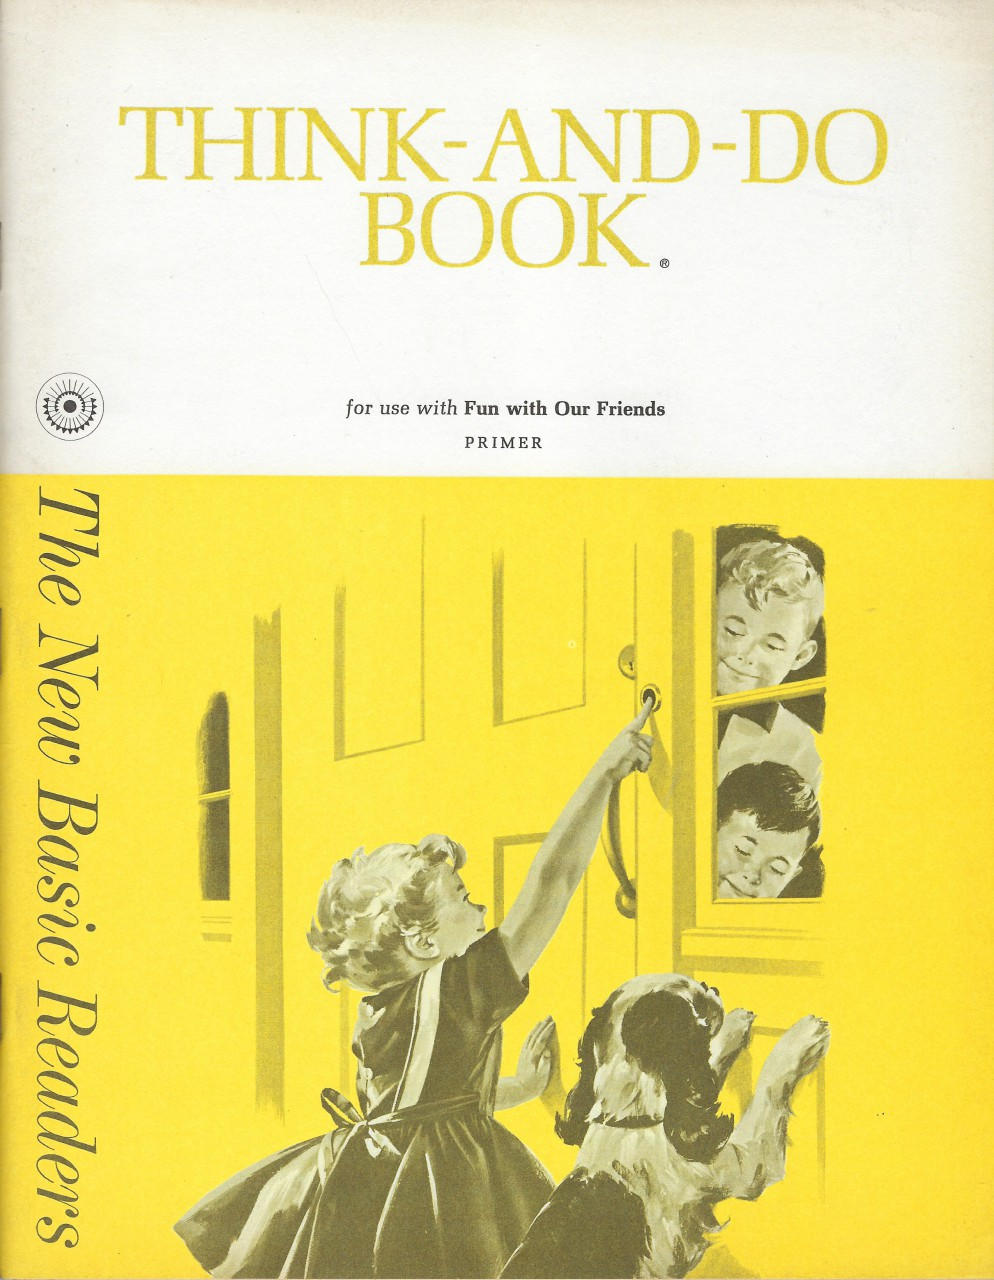 Image for Think-and-Do Book For Use with Fun with Our Friends Primer 1962 The New Basic Readers